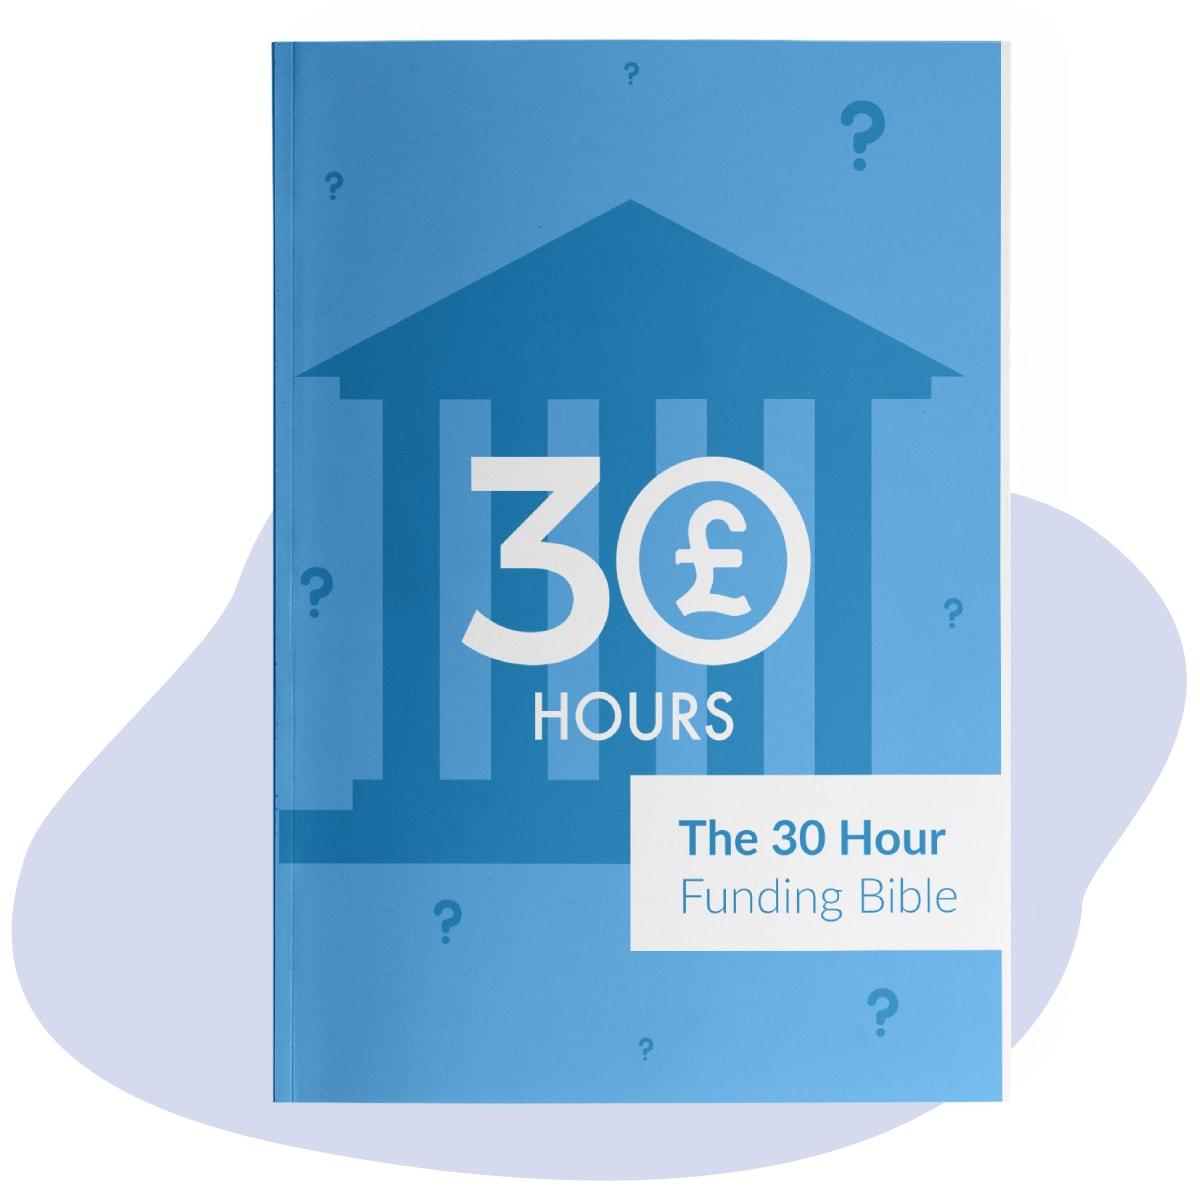 The 30 Hours Funding Bible